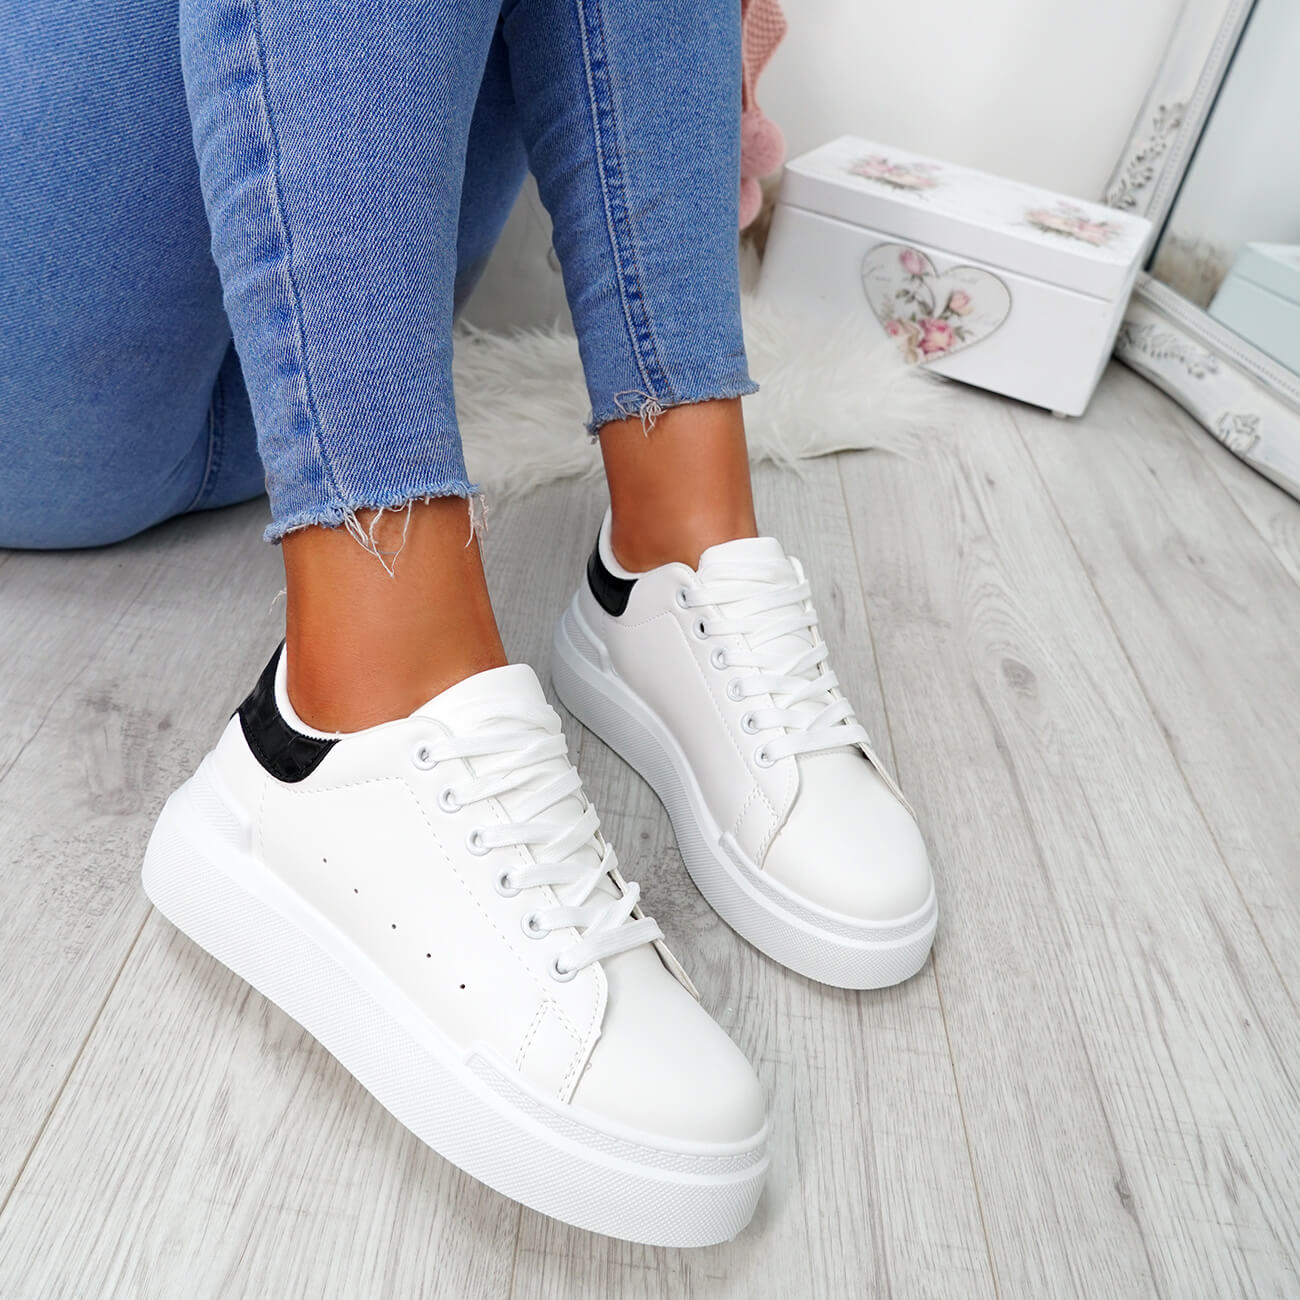 WOMENS-LADIES-LACE-UP-PLIMSOLL-SNEAKERS-CROC-SNAKE-TRAINERS-CASUAL-SHOES-SIZE thumbnail 25